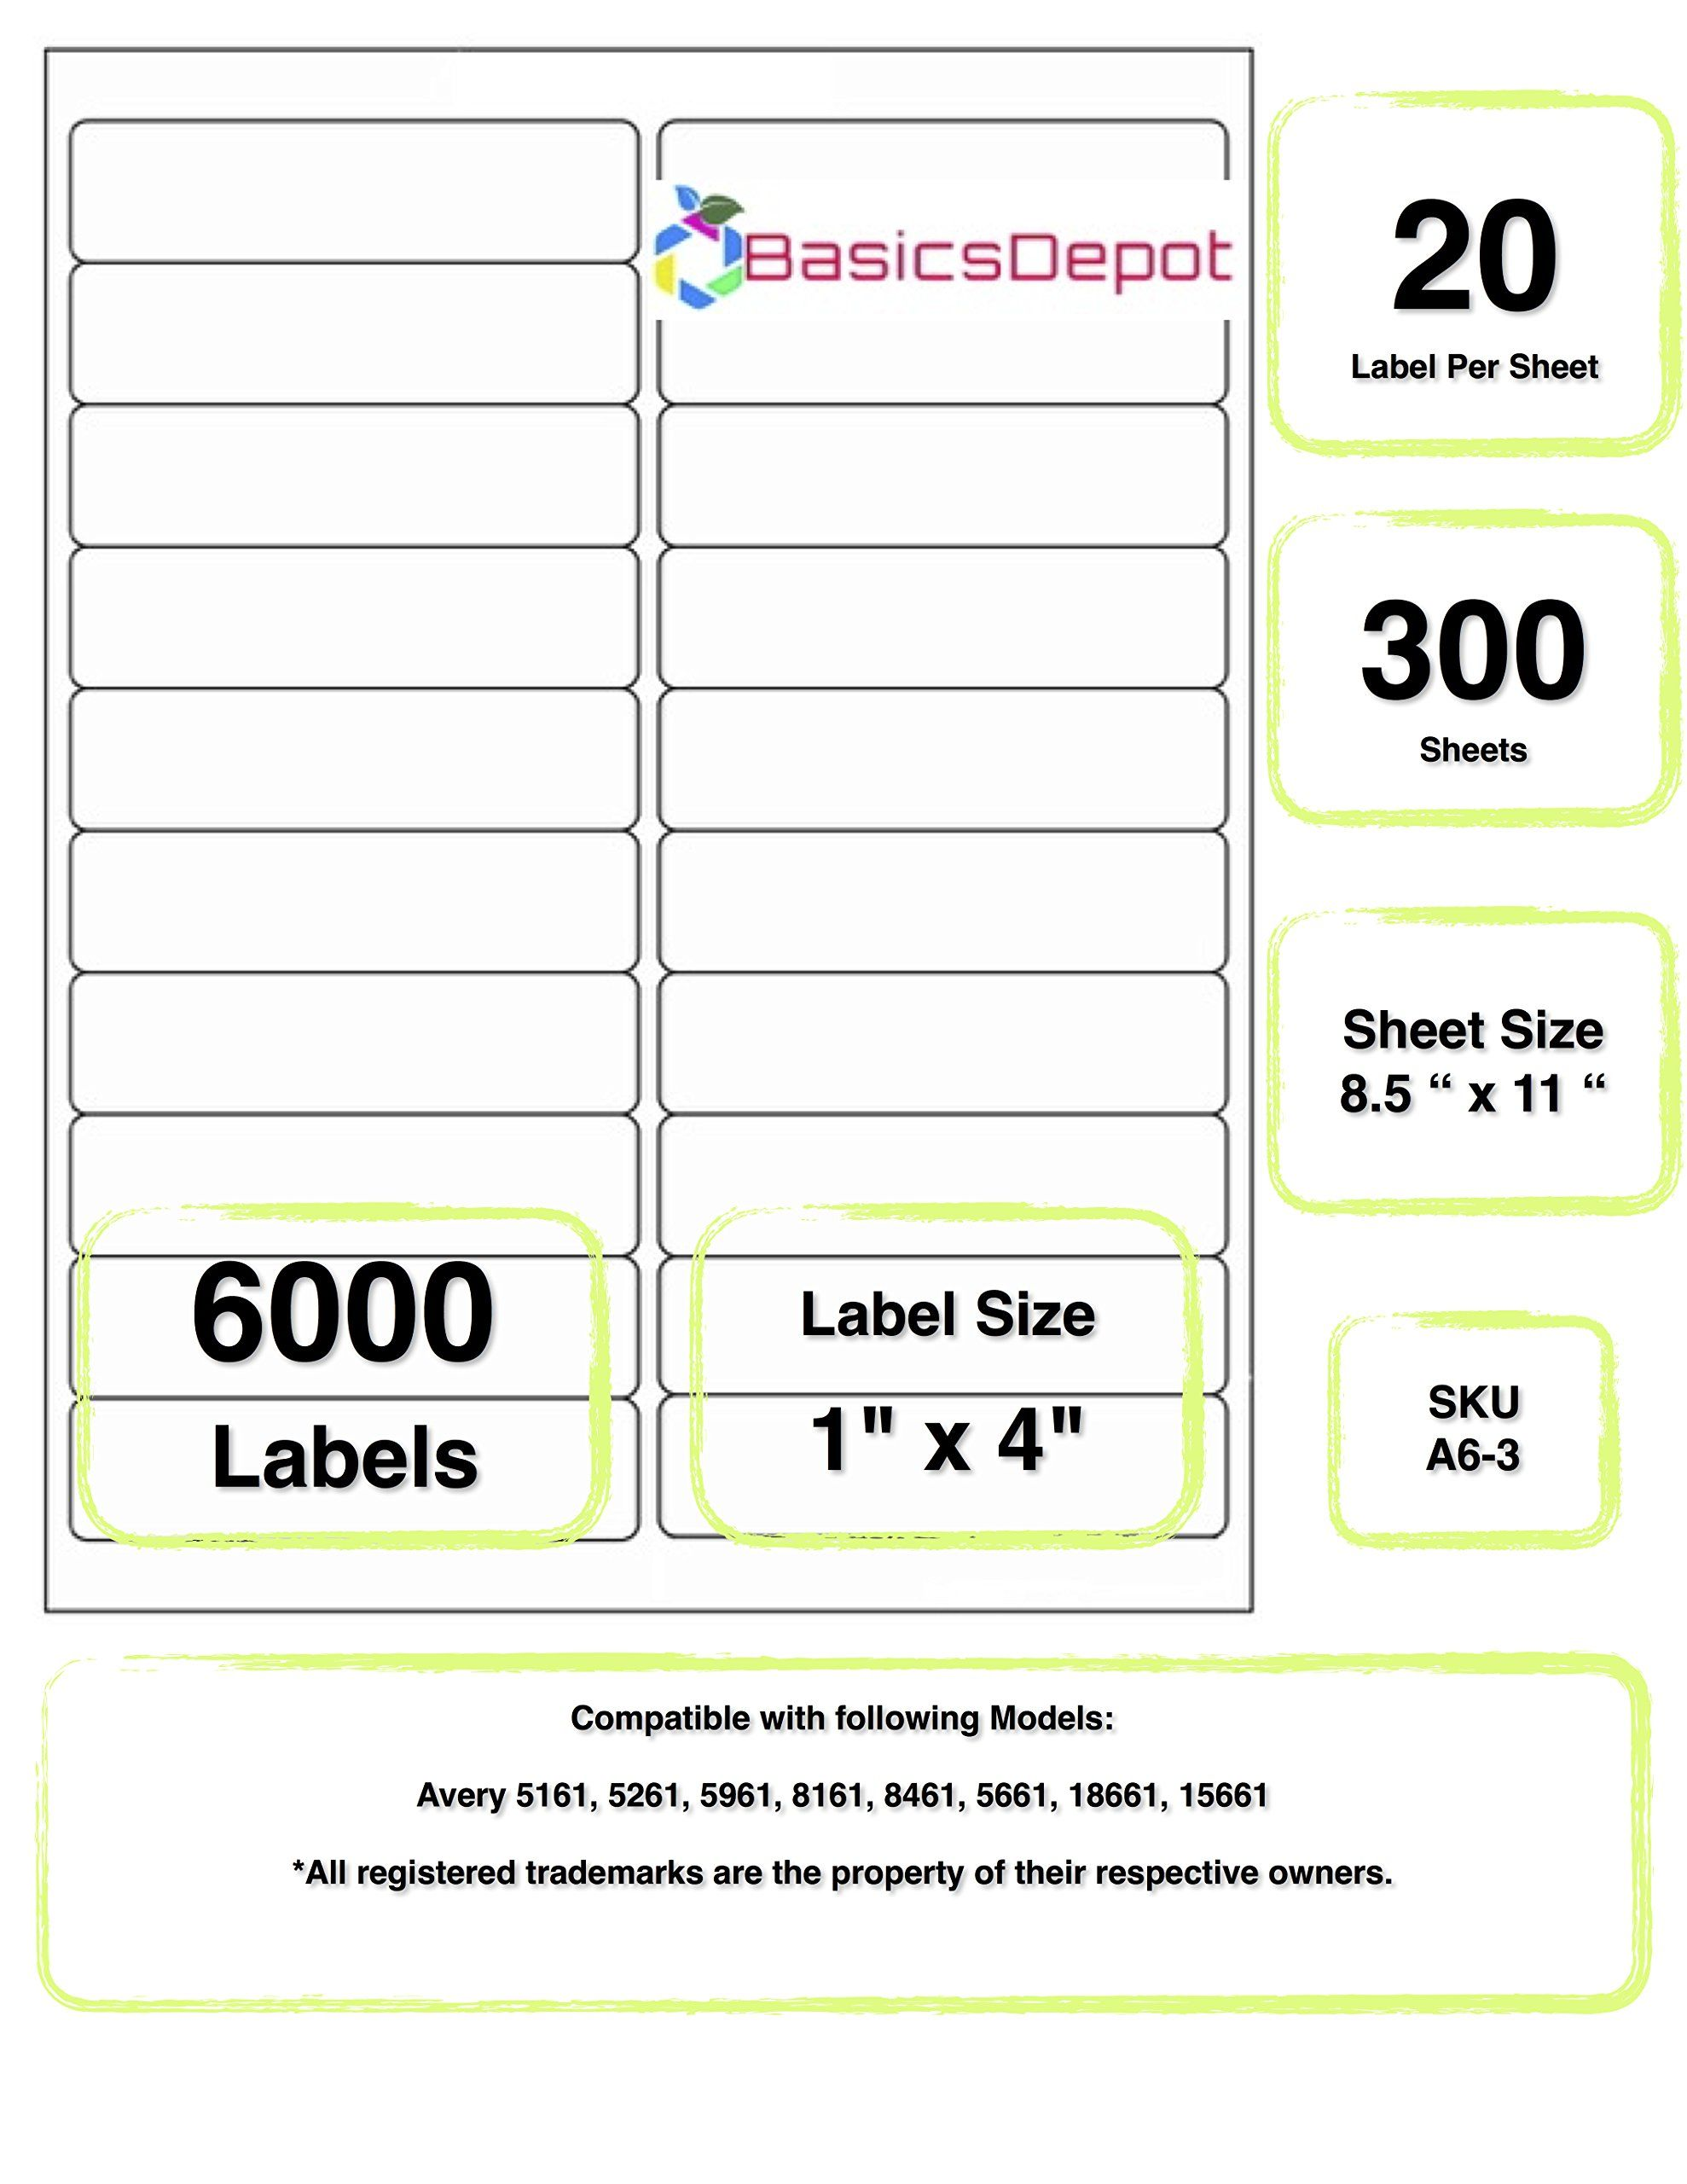 Avery 5161 Compatible 4 X 1 Inch Label Same Size As Avery 5161 20 Label Per Sheet 300 Sheets 6000 Labels By Basicdepot Awesom Labels Avery Compatibility